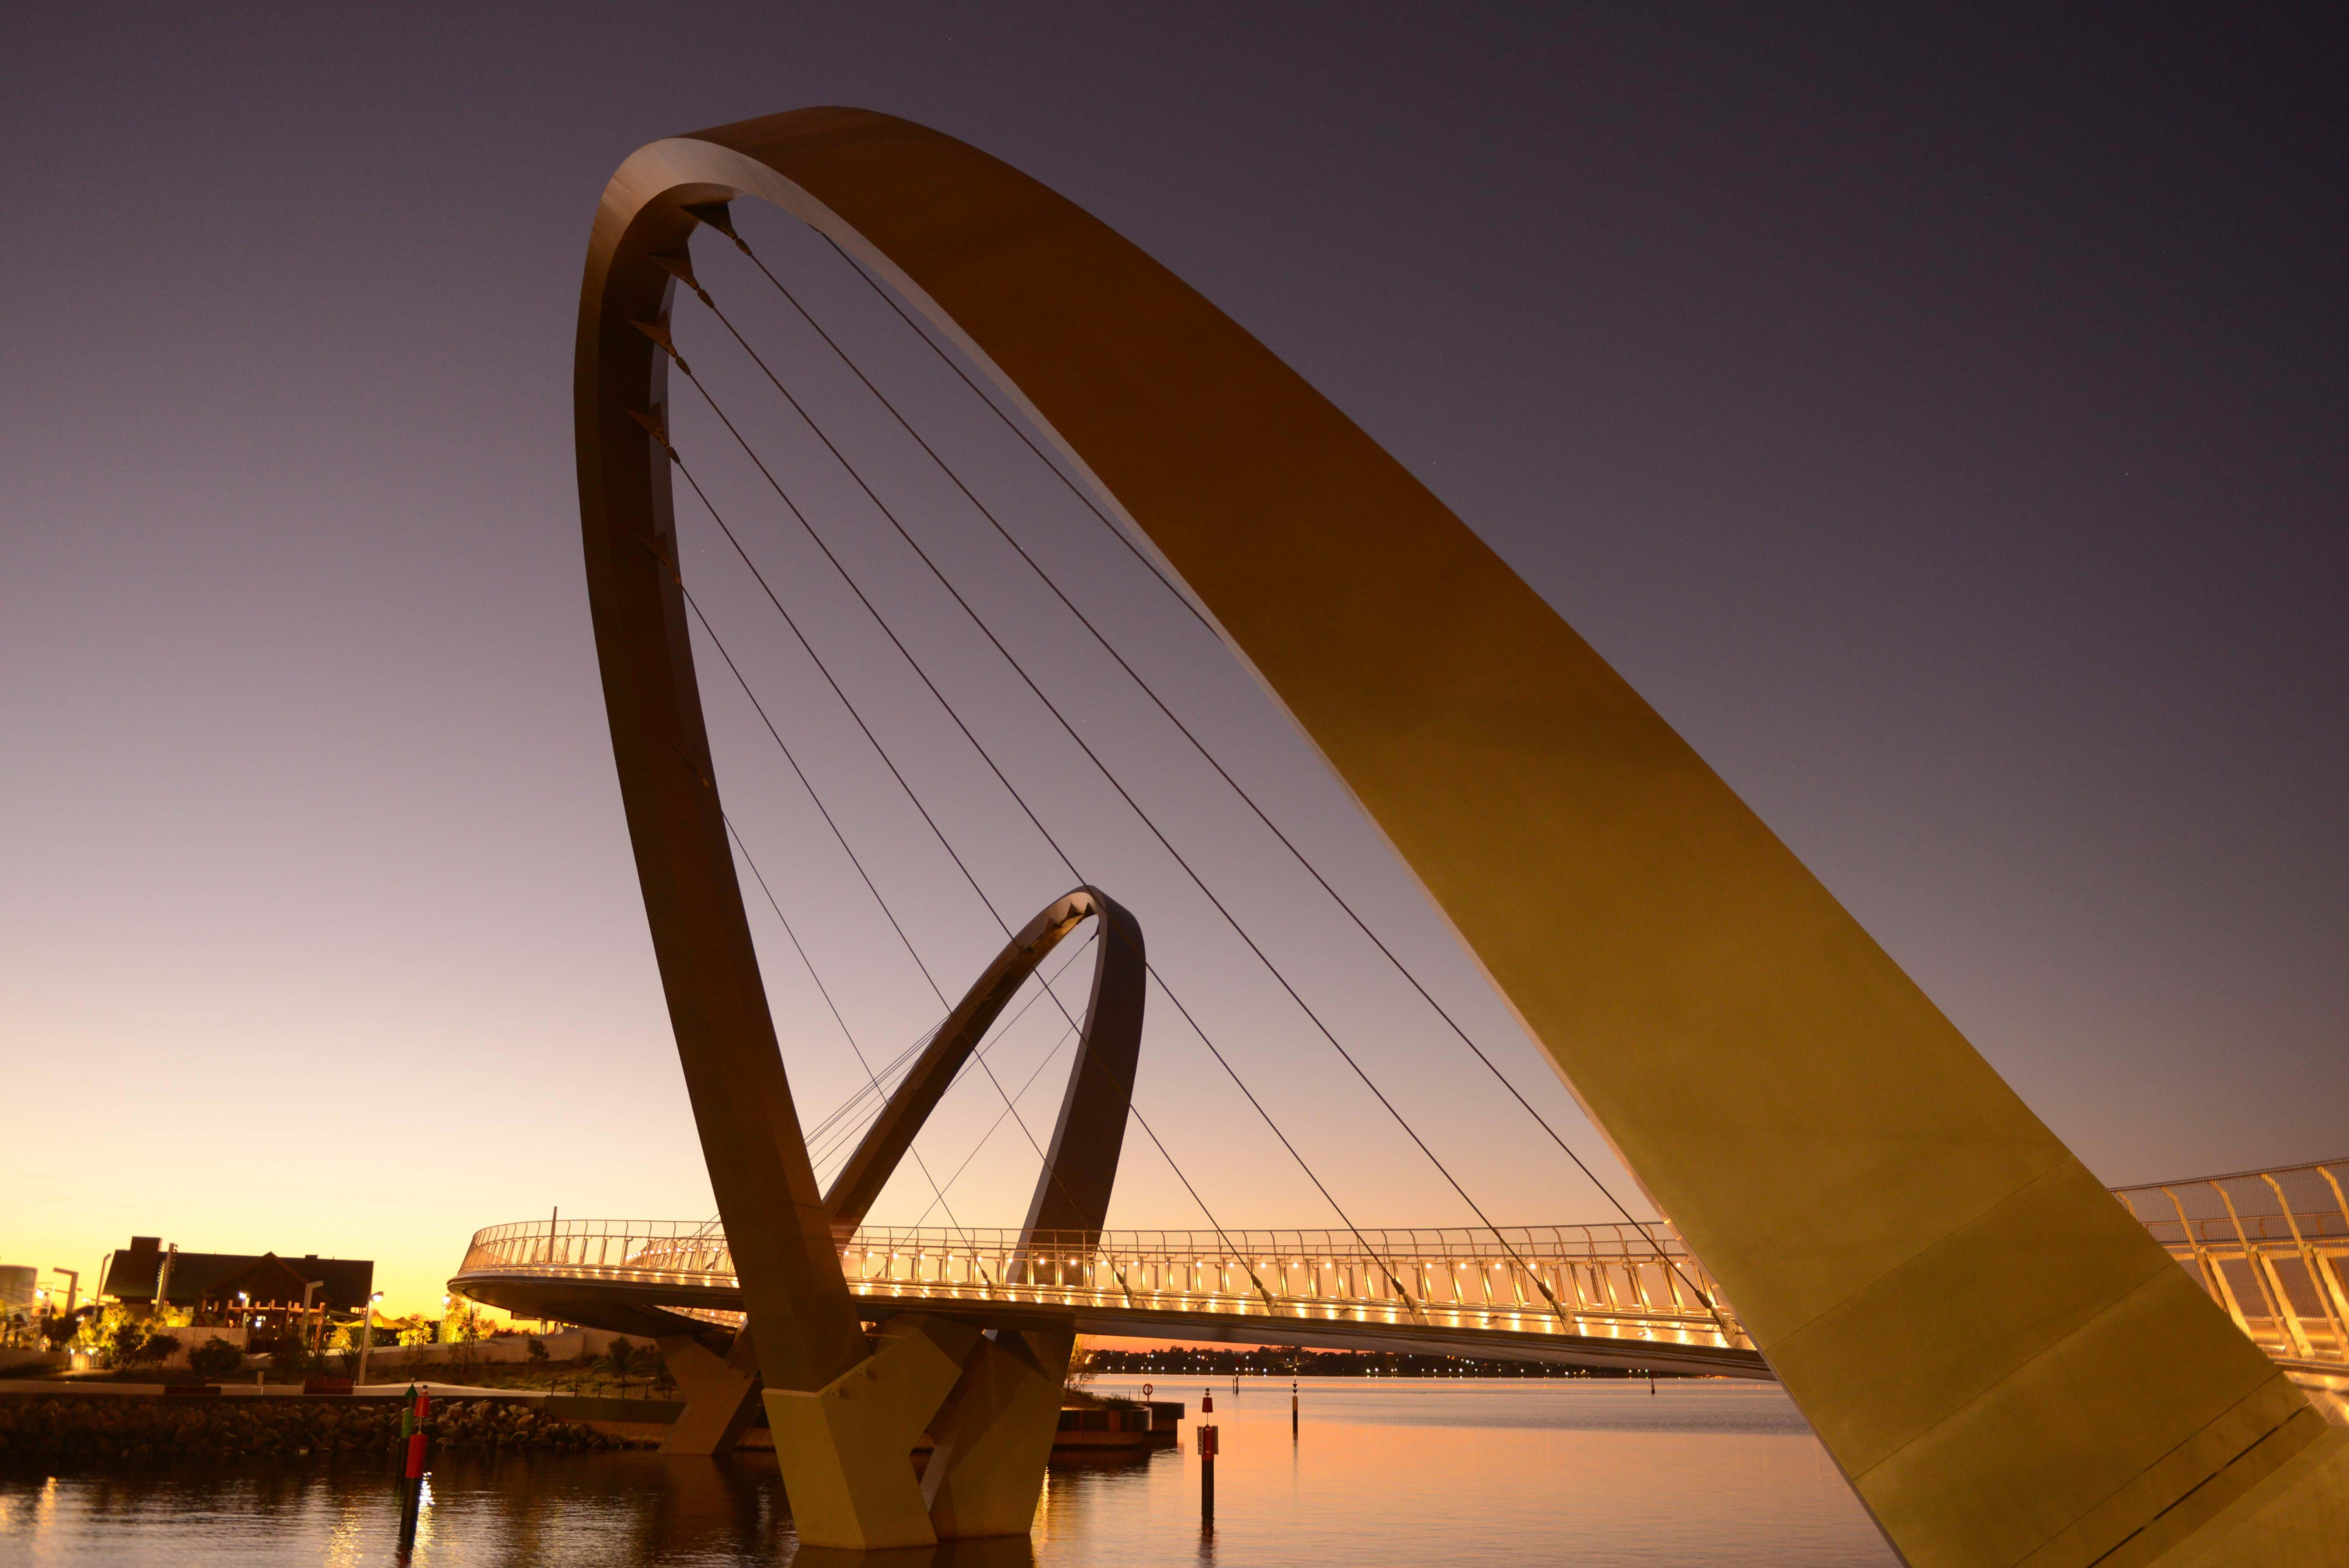 Brug in Perth bij zonsondergang | Studeer in Perth via KILROY